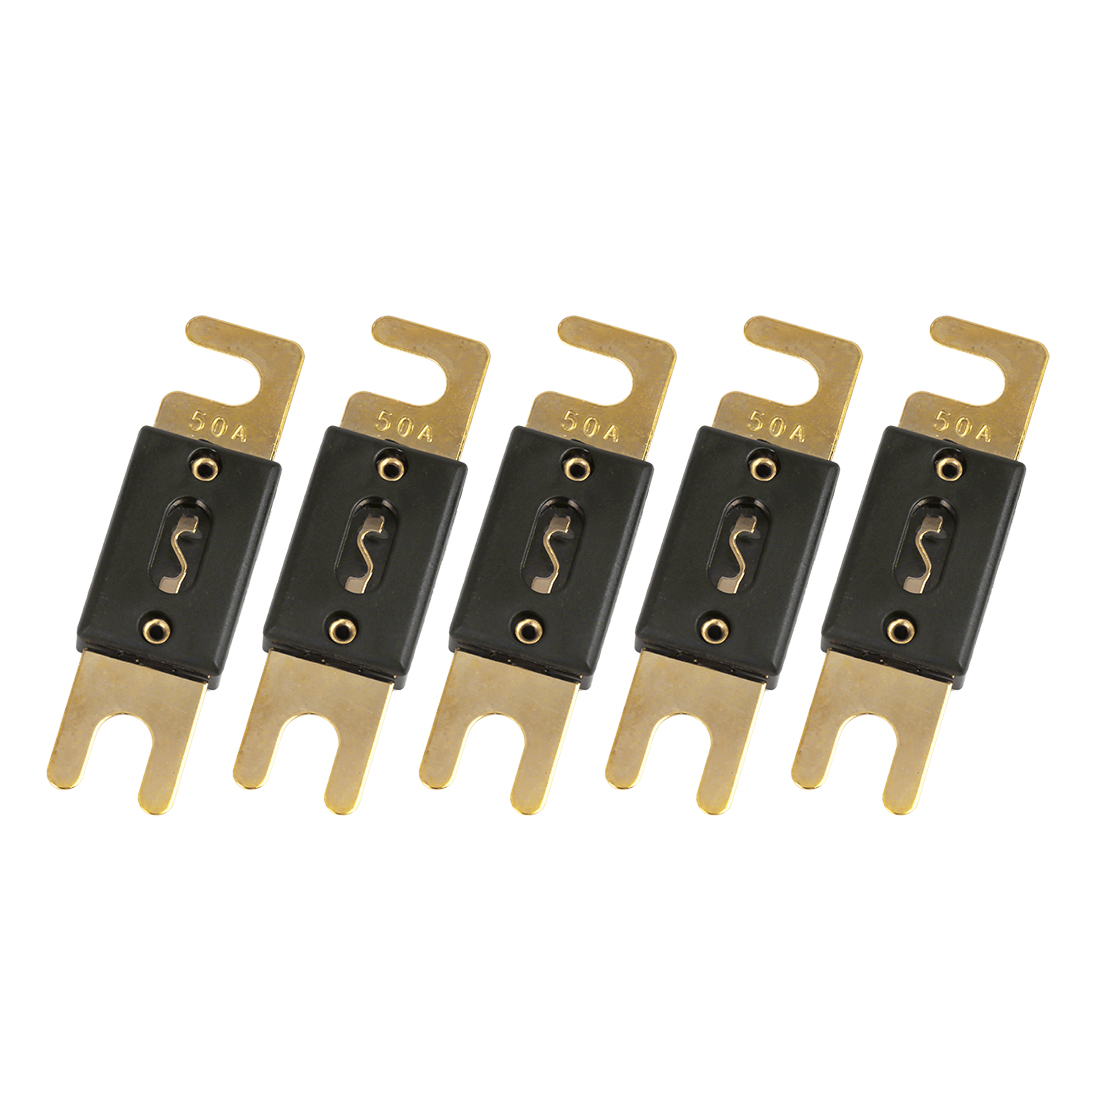 5 Pcs 50 Amp ANL Fuse Gold Tone Plated for Car Audio Video Stereo